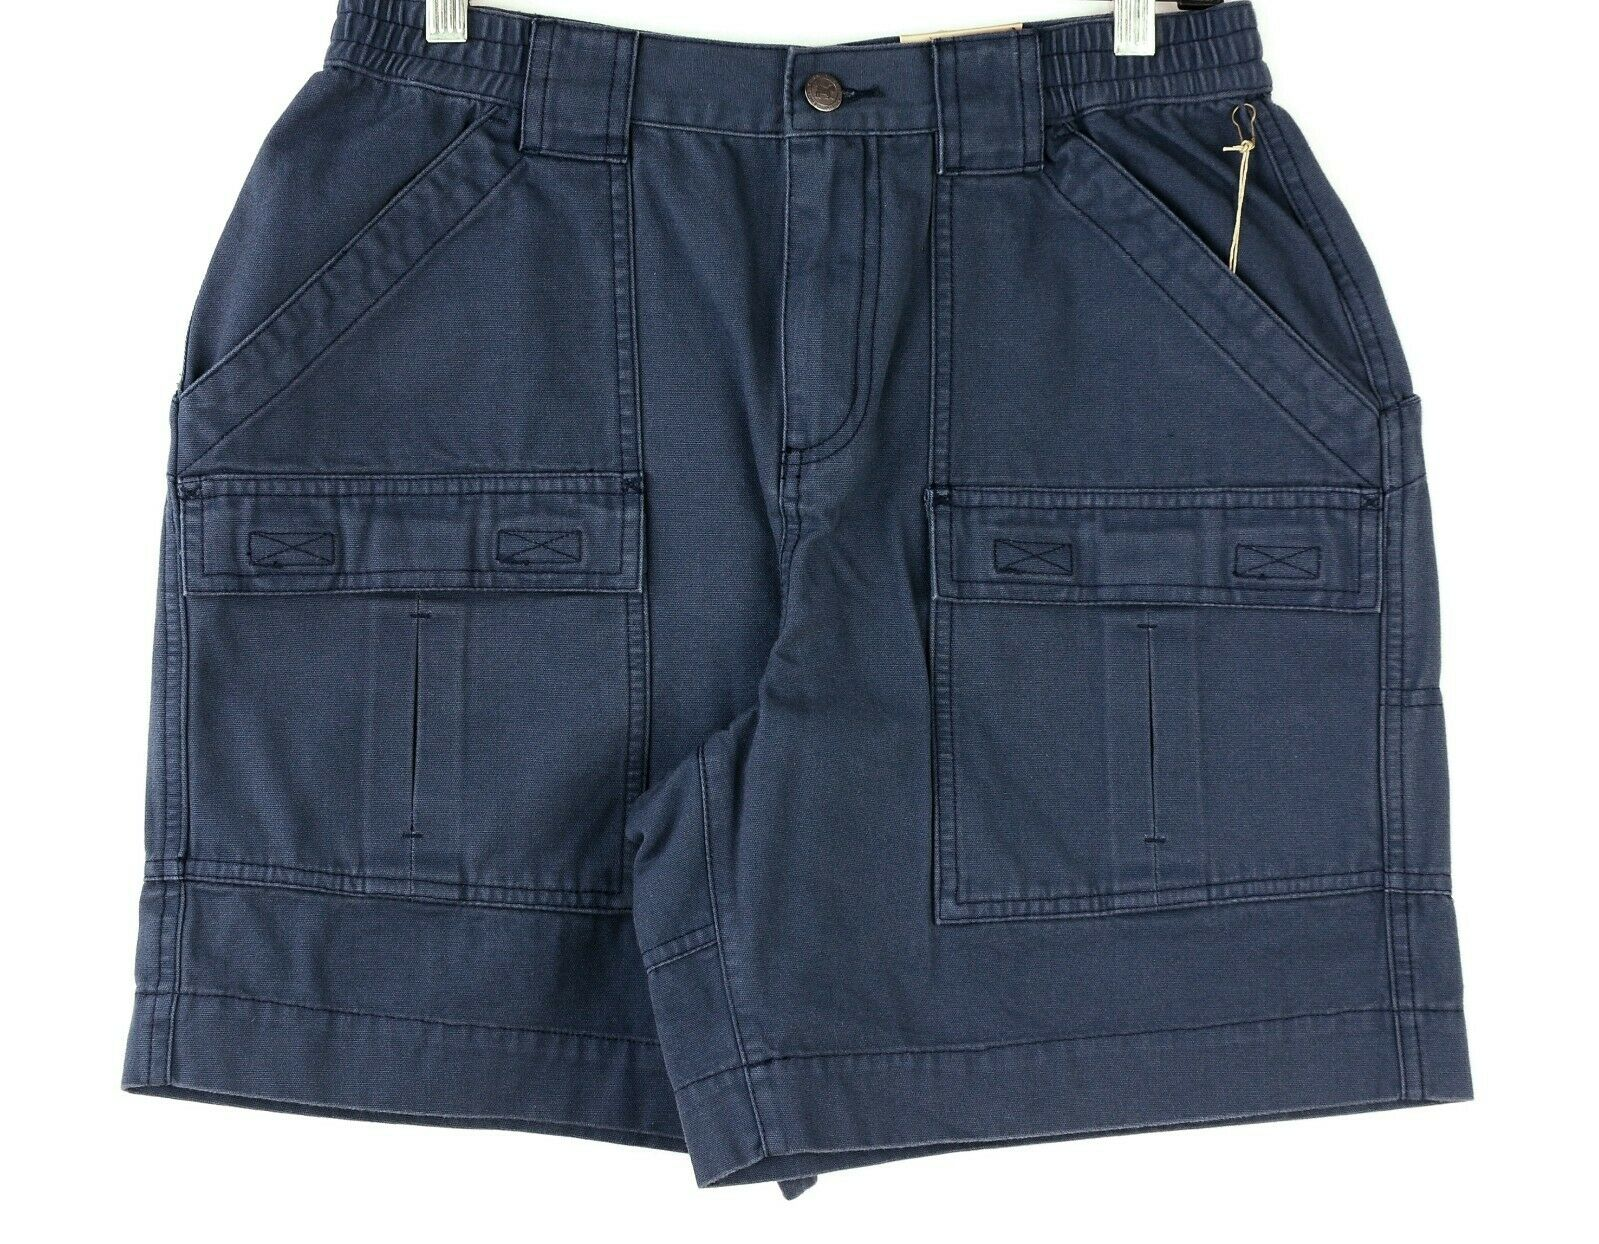 Royal Robbins Men's bluee Water Cargo Shorts 73353 Navy Size 36